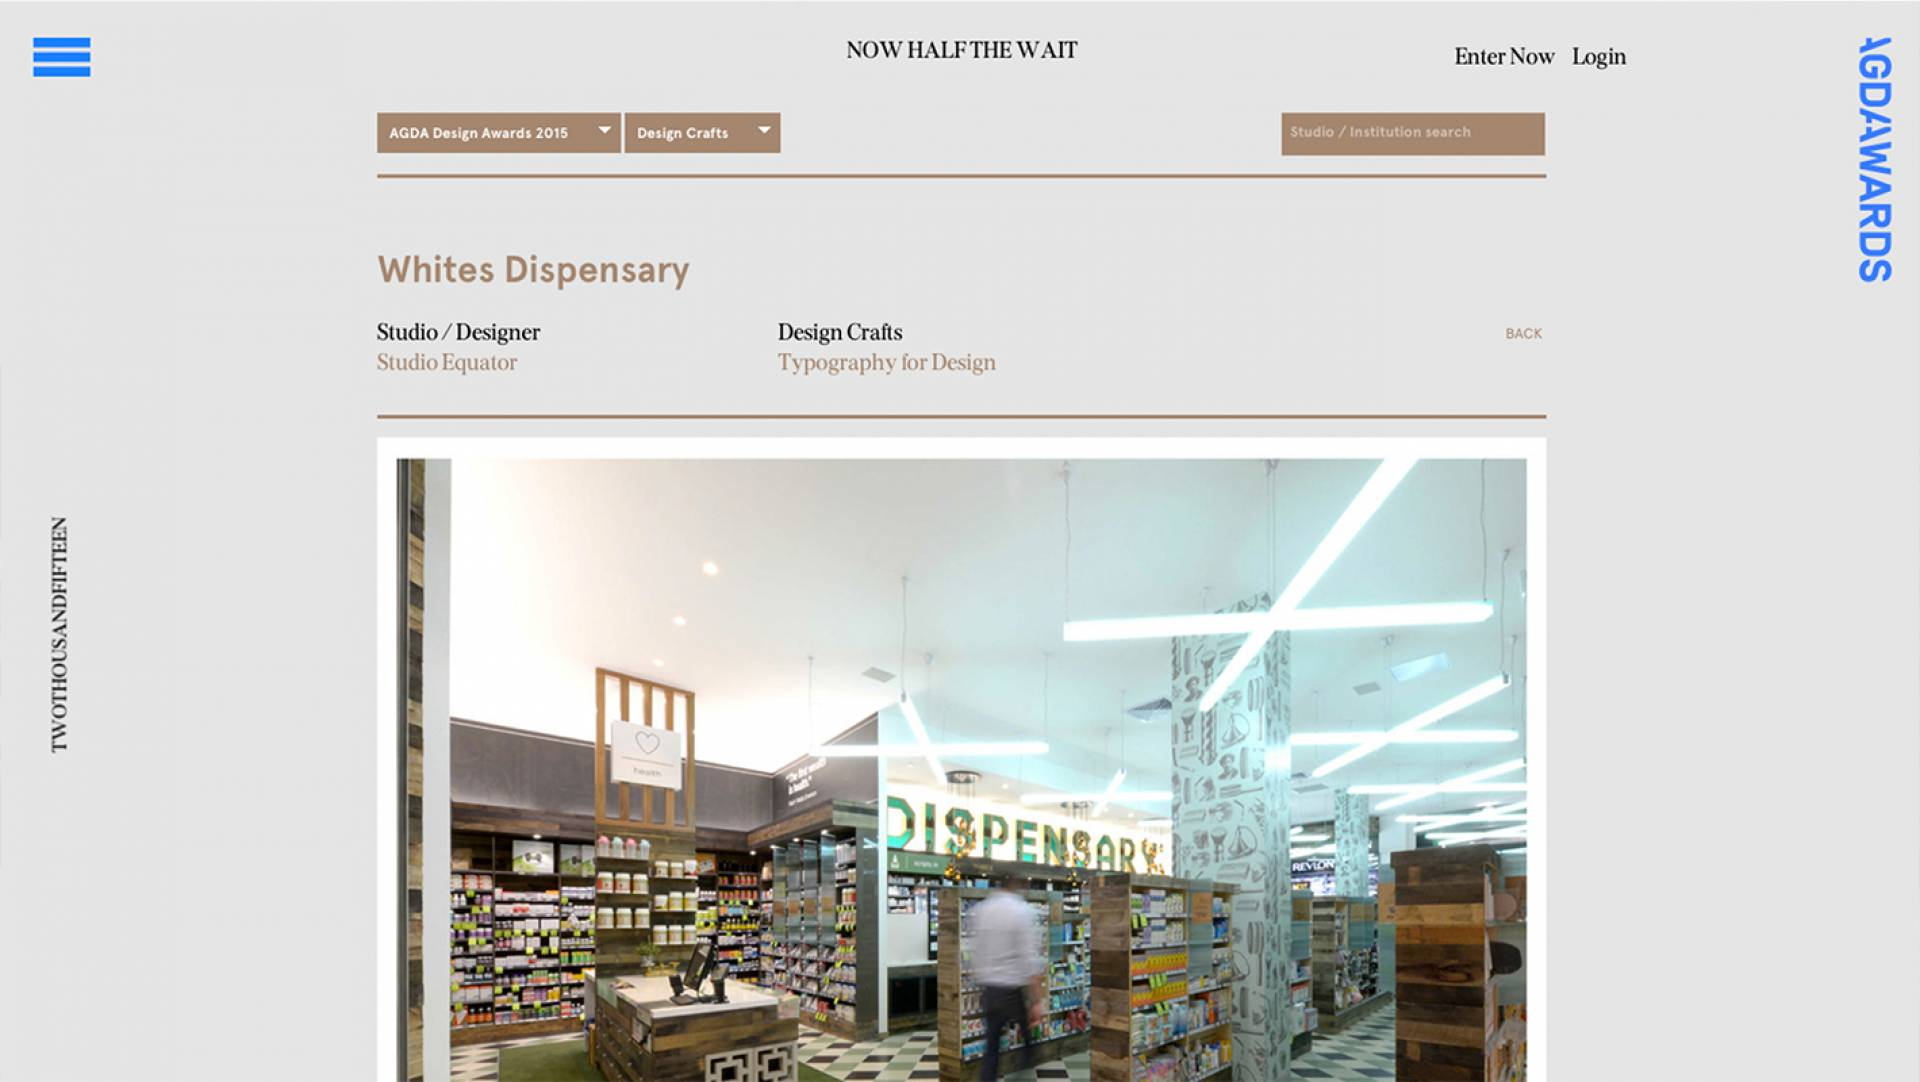 AGDA Awards 2015 Finalists Design Crafts-Whites Dispensary